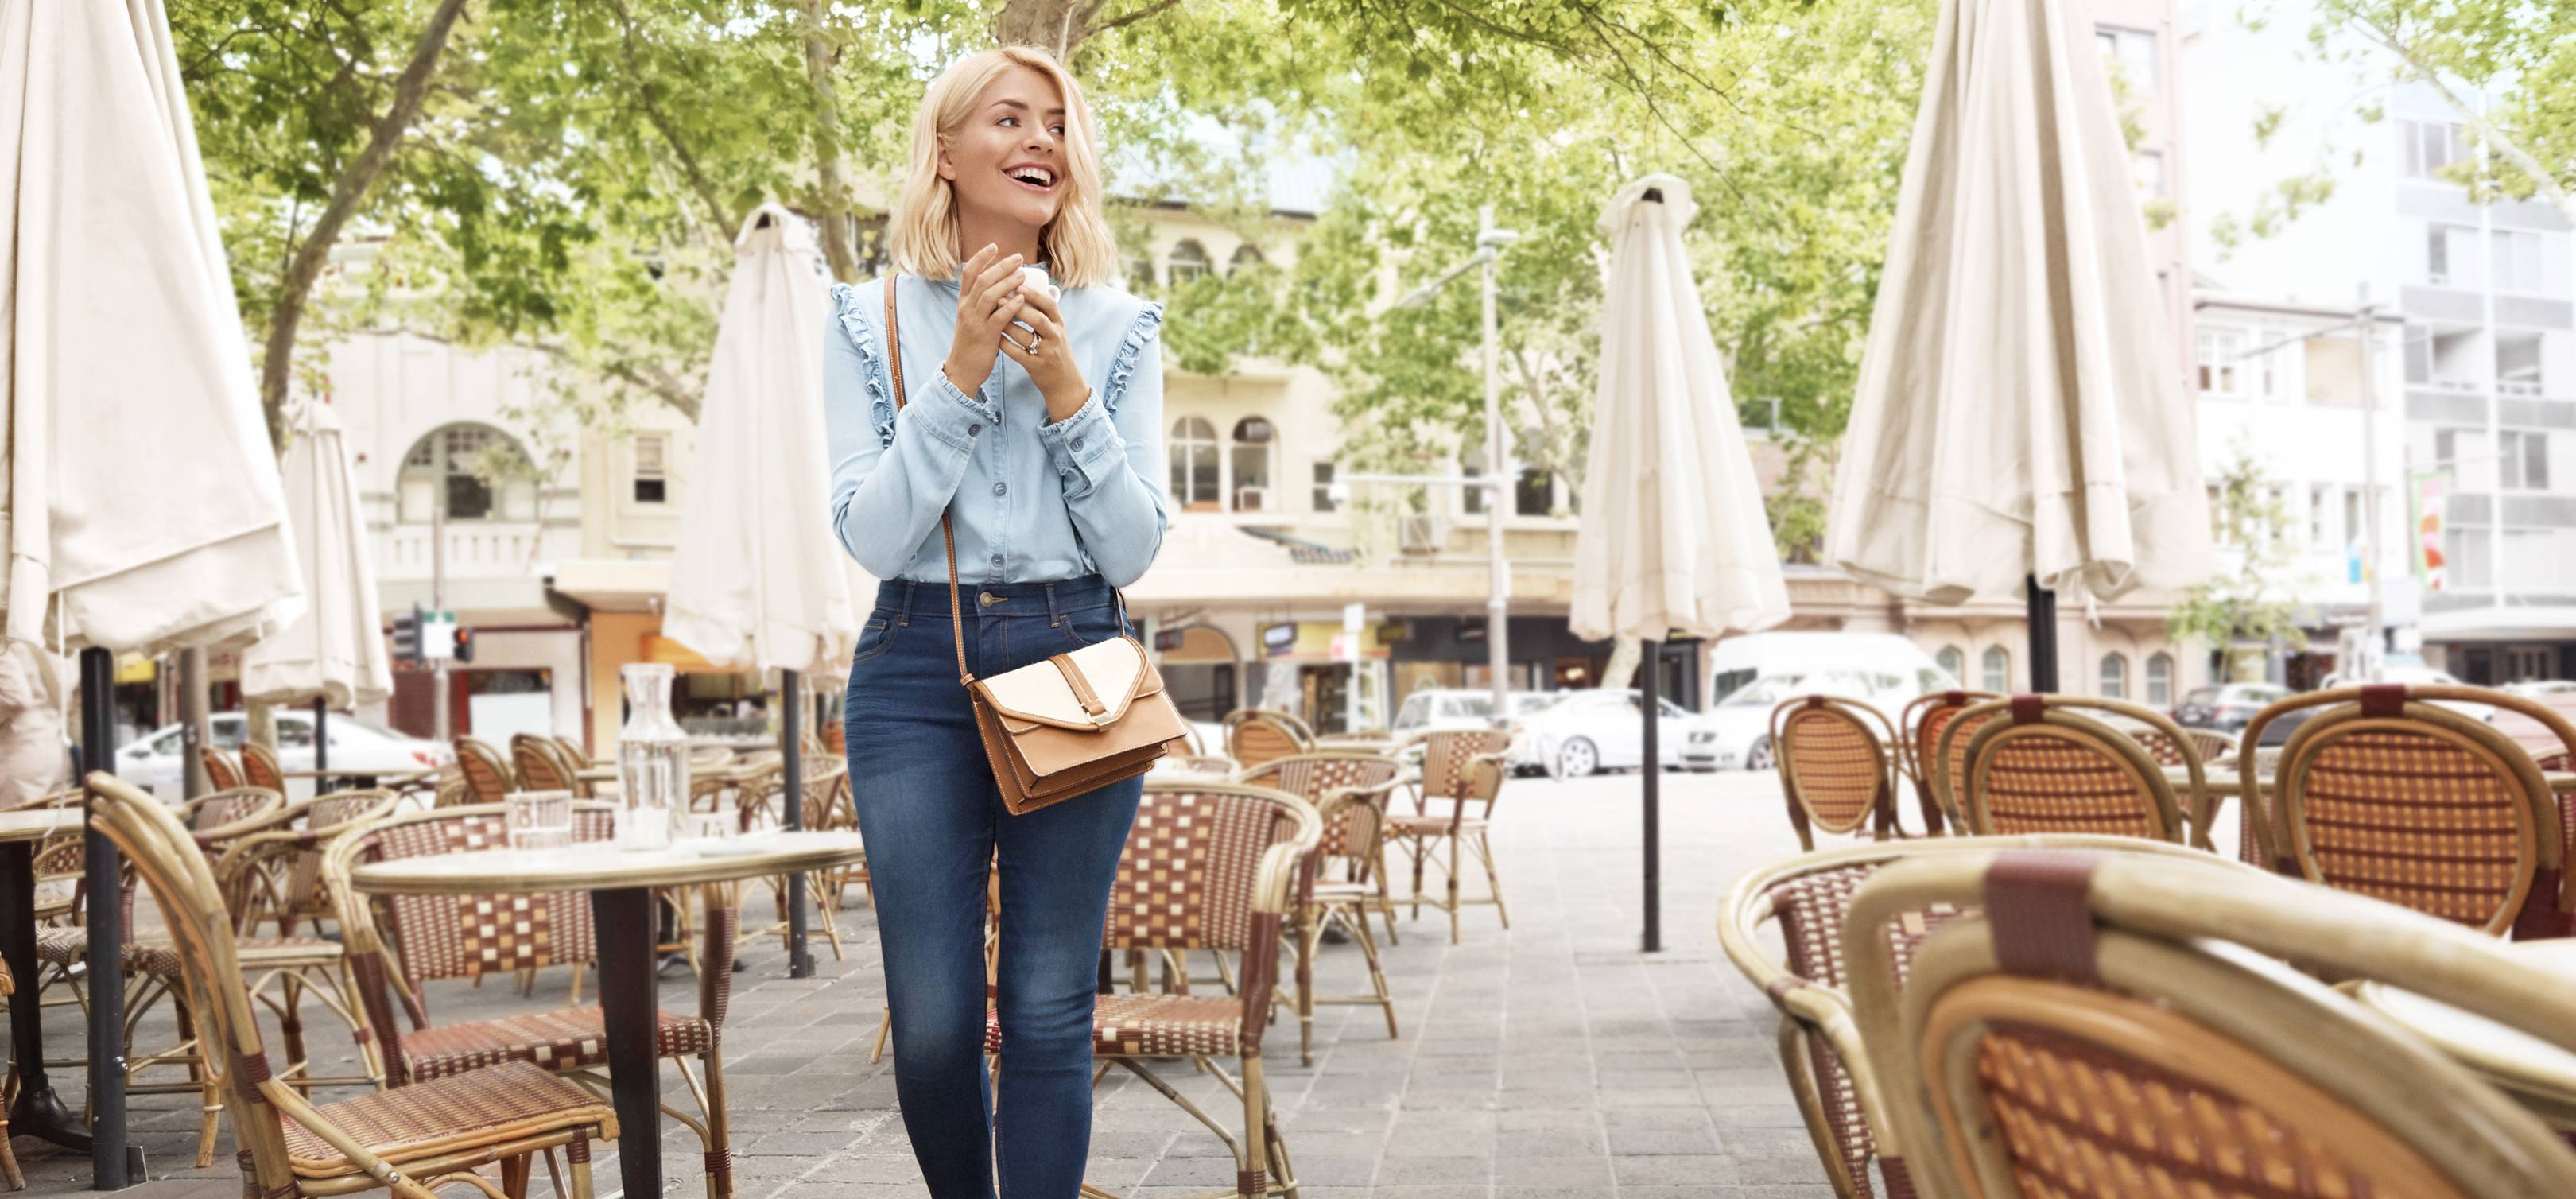 fbb6d9451 This shirt from Holly Willoughby's new M&S collection sold out in just  minutes